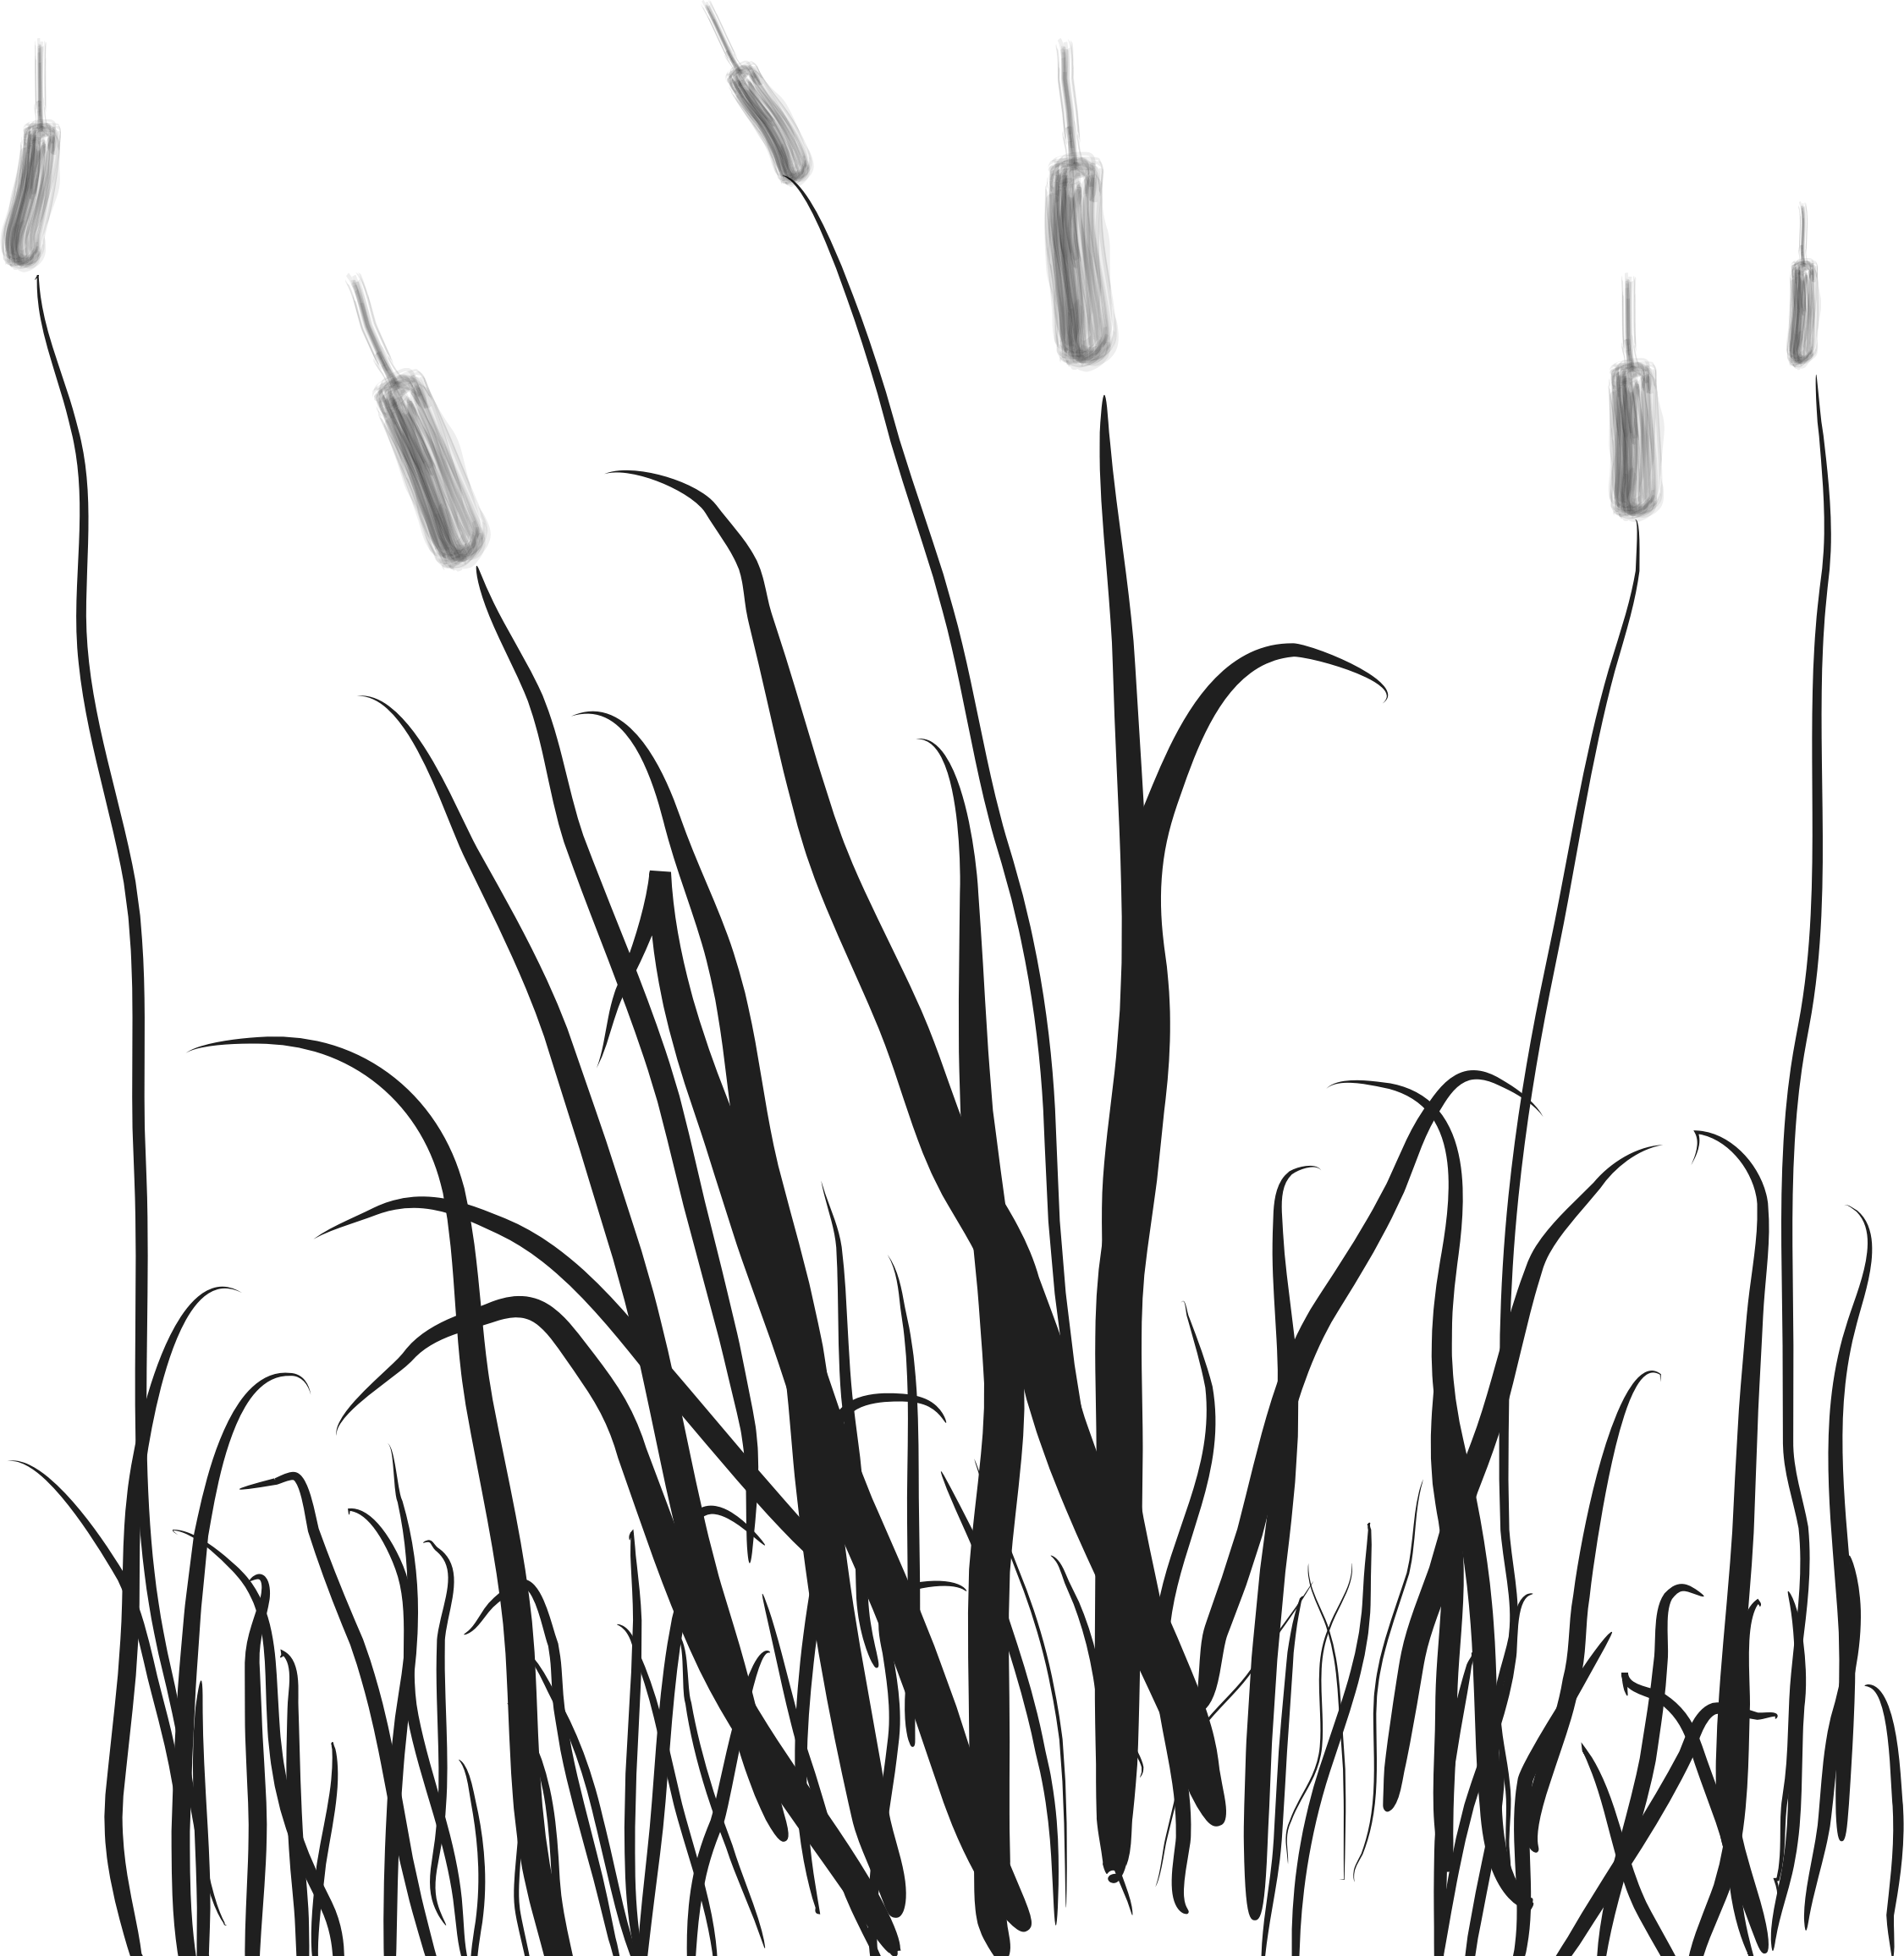 Marsh Grass Drawing Images - Reverse Search